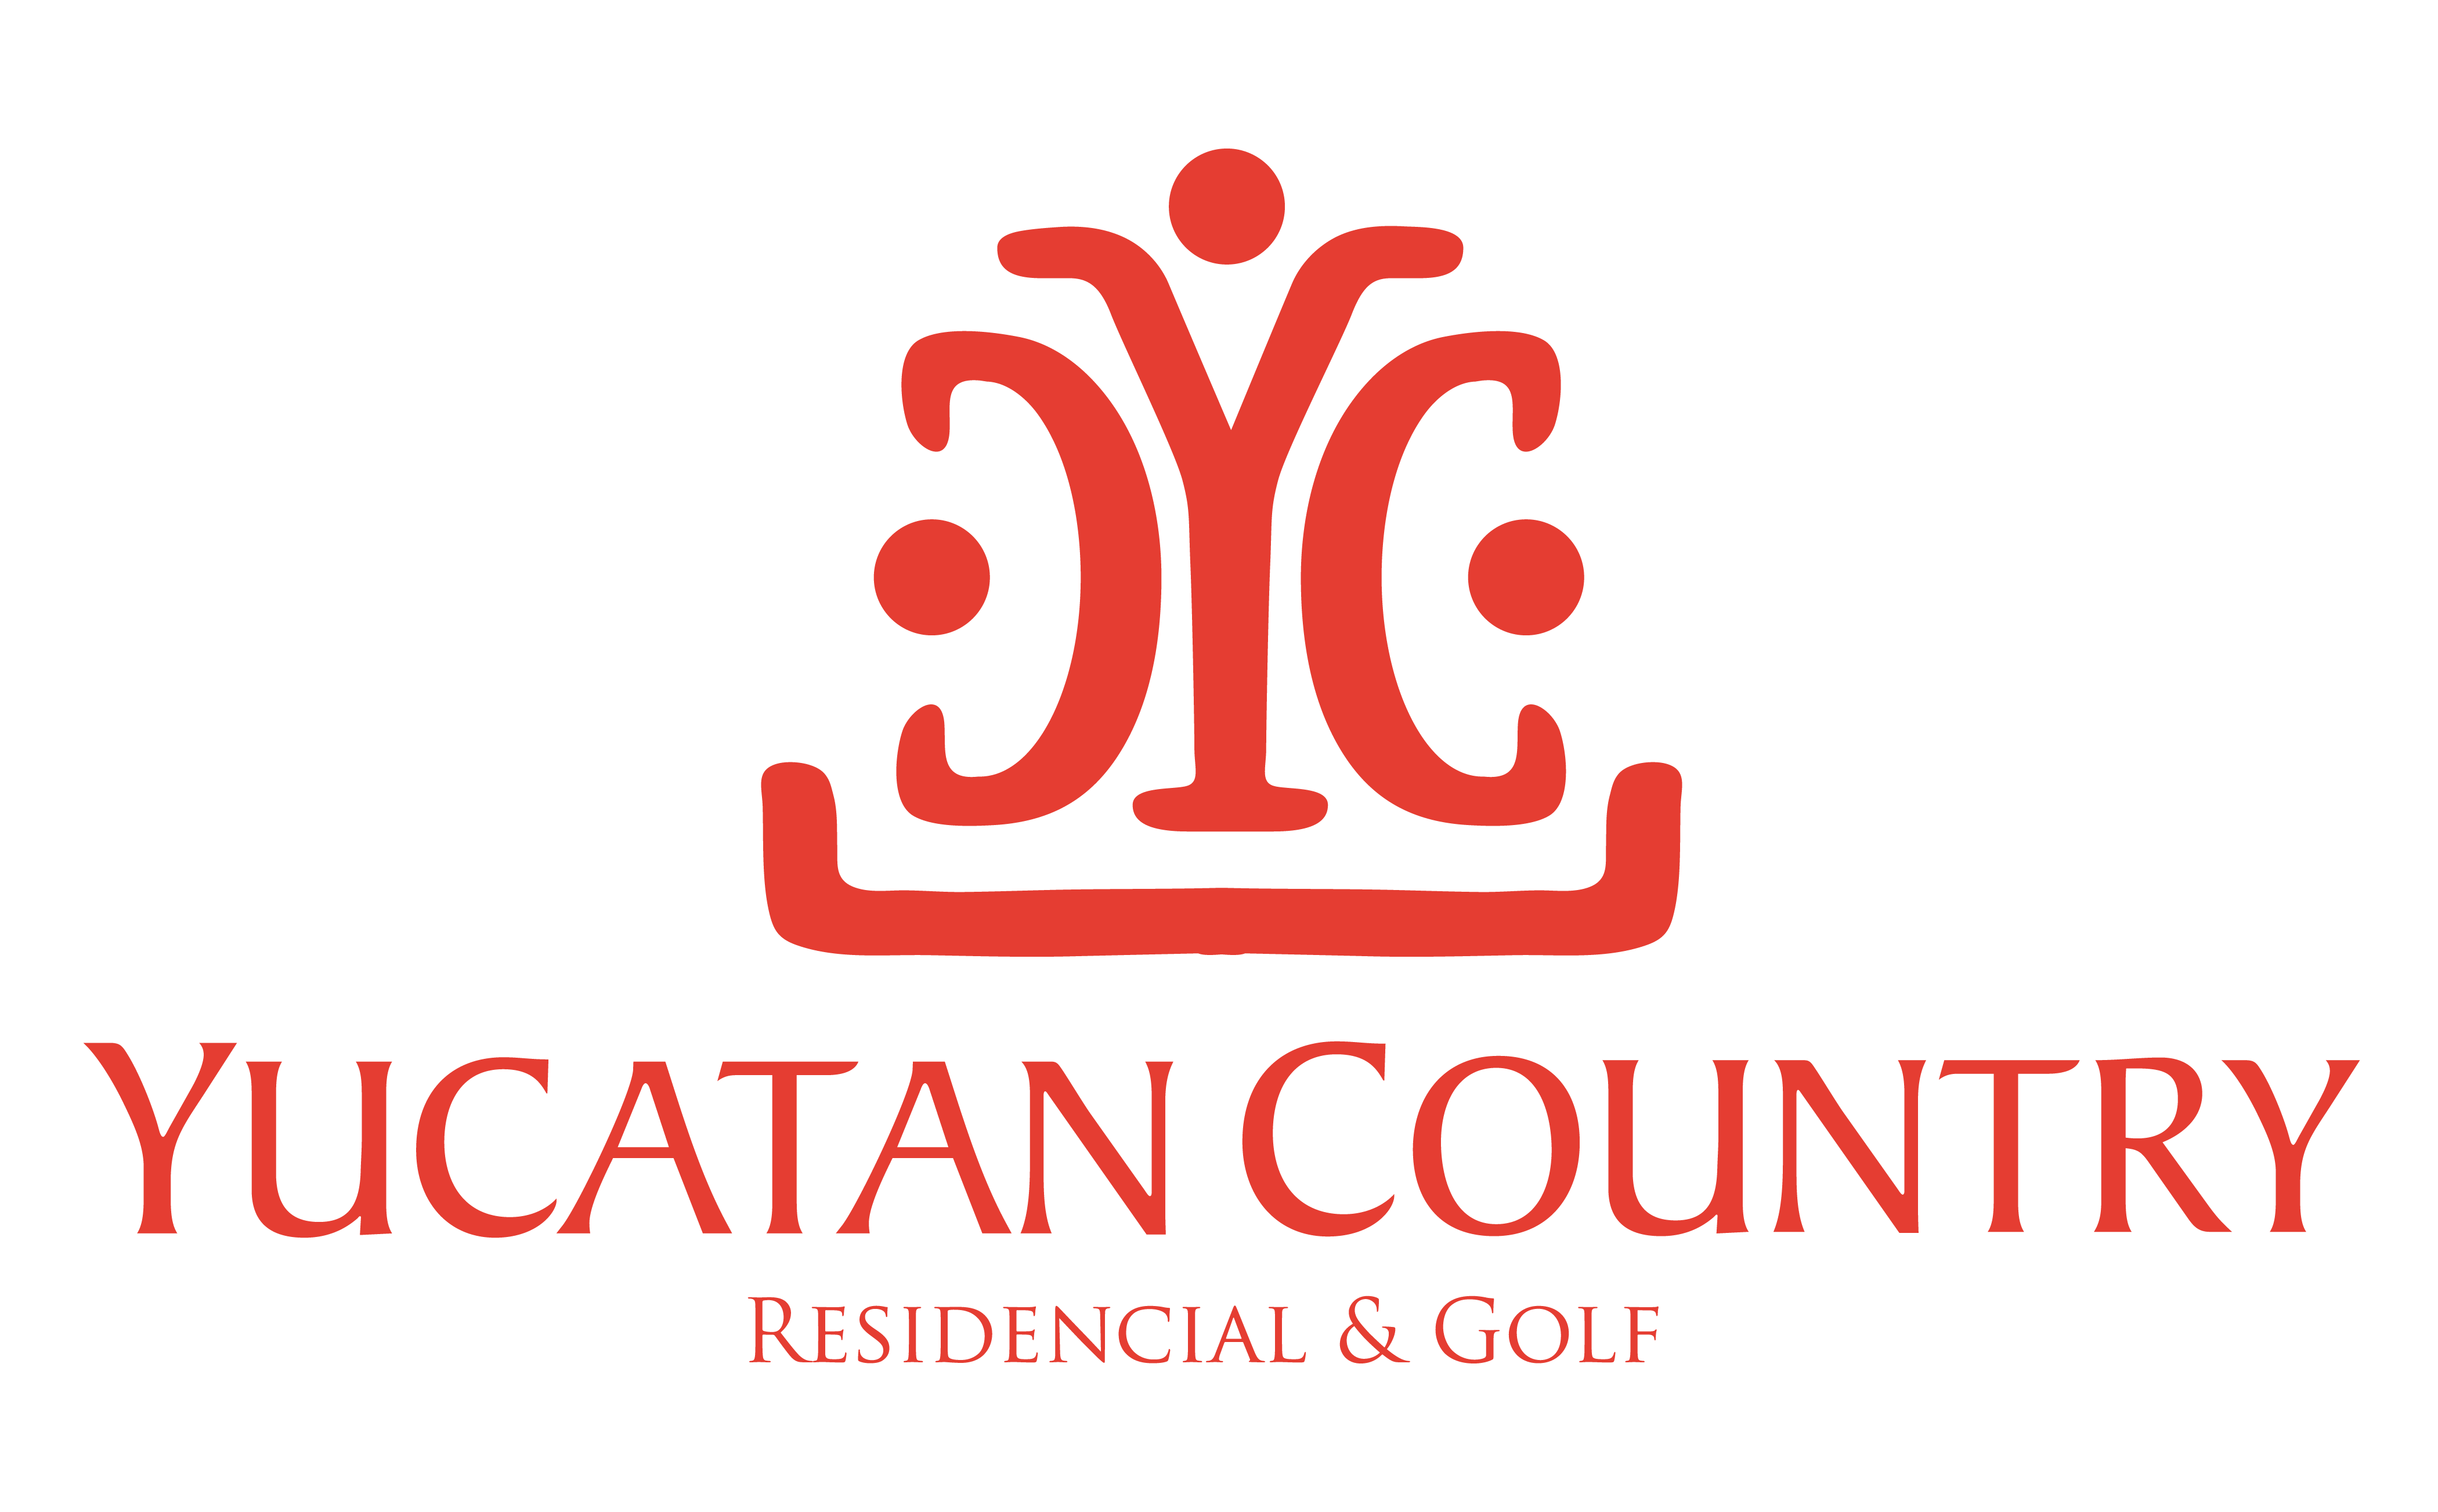 Yucatan Country Club, residential and golf.